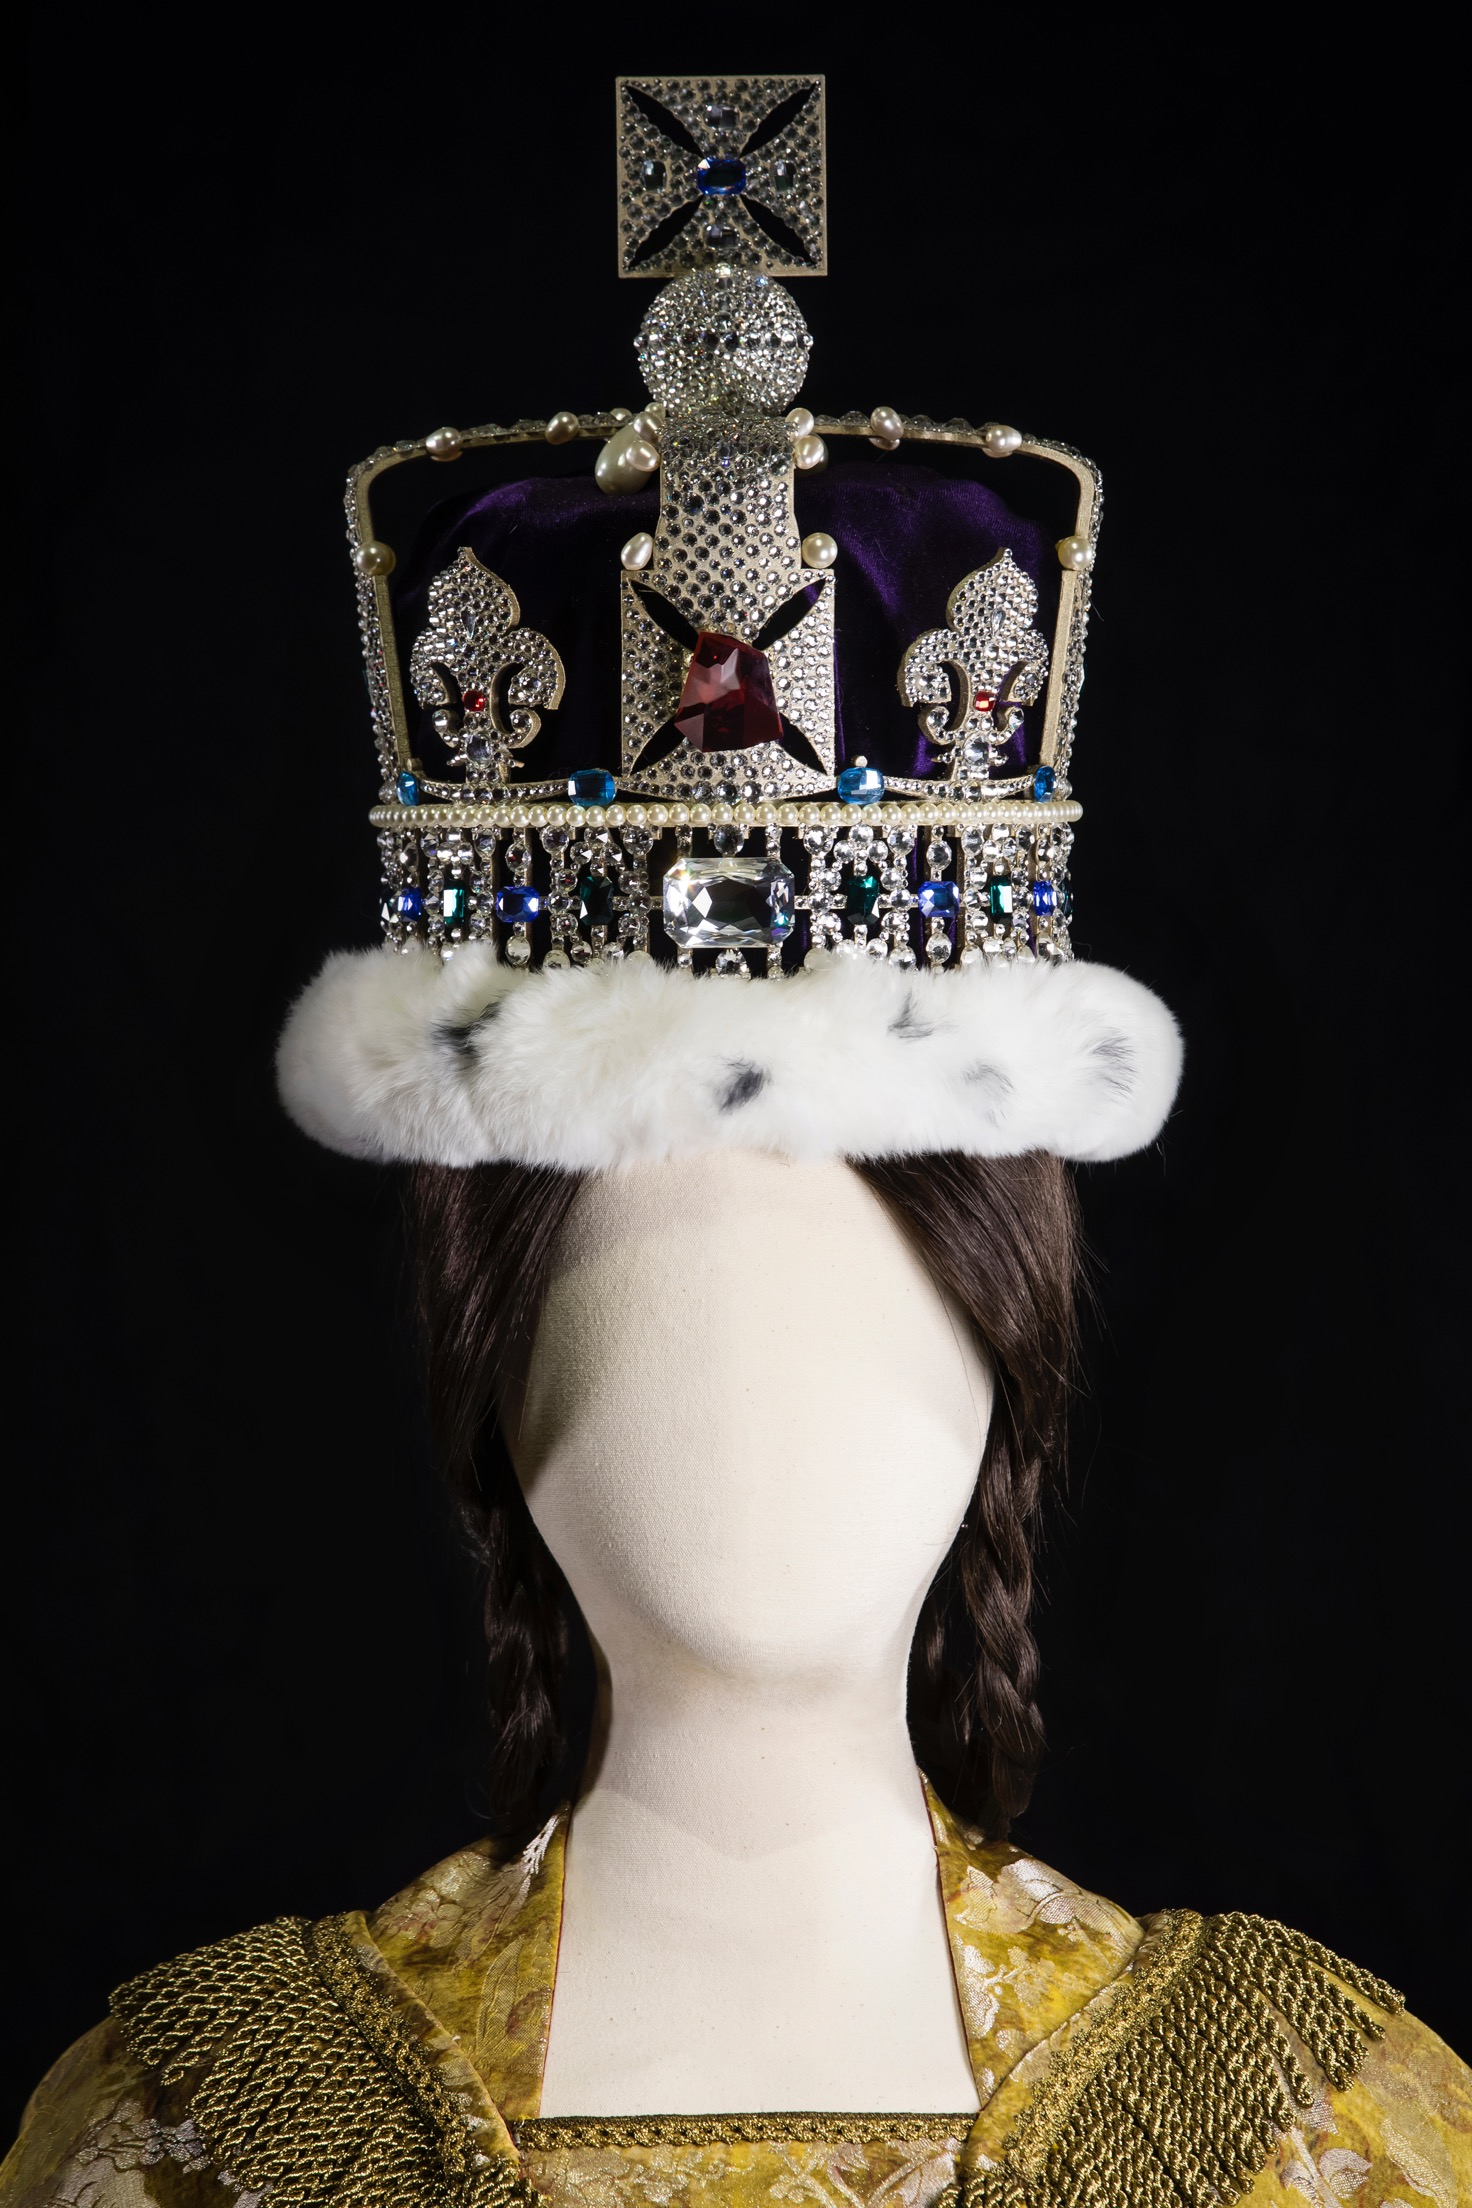 """Imperial State Crown Recreation by Tina Gancev - Exhibited at SCAD FASH, Museum of Fashion and Film, during the """"Cinematic Couture"""" exhibit in Atlanta, GA."""